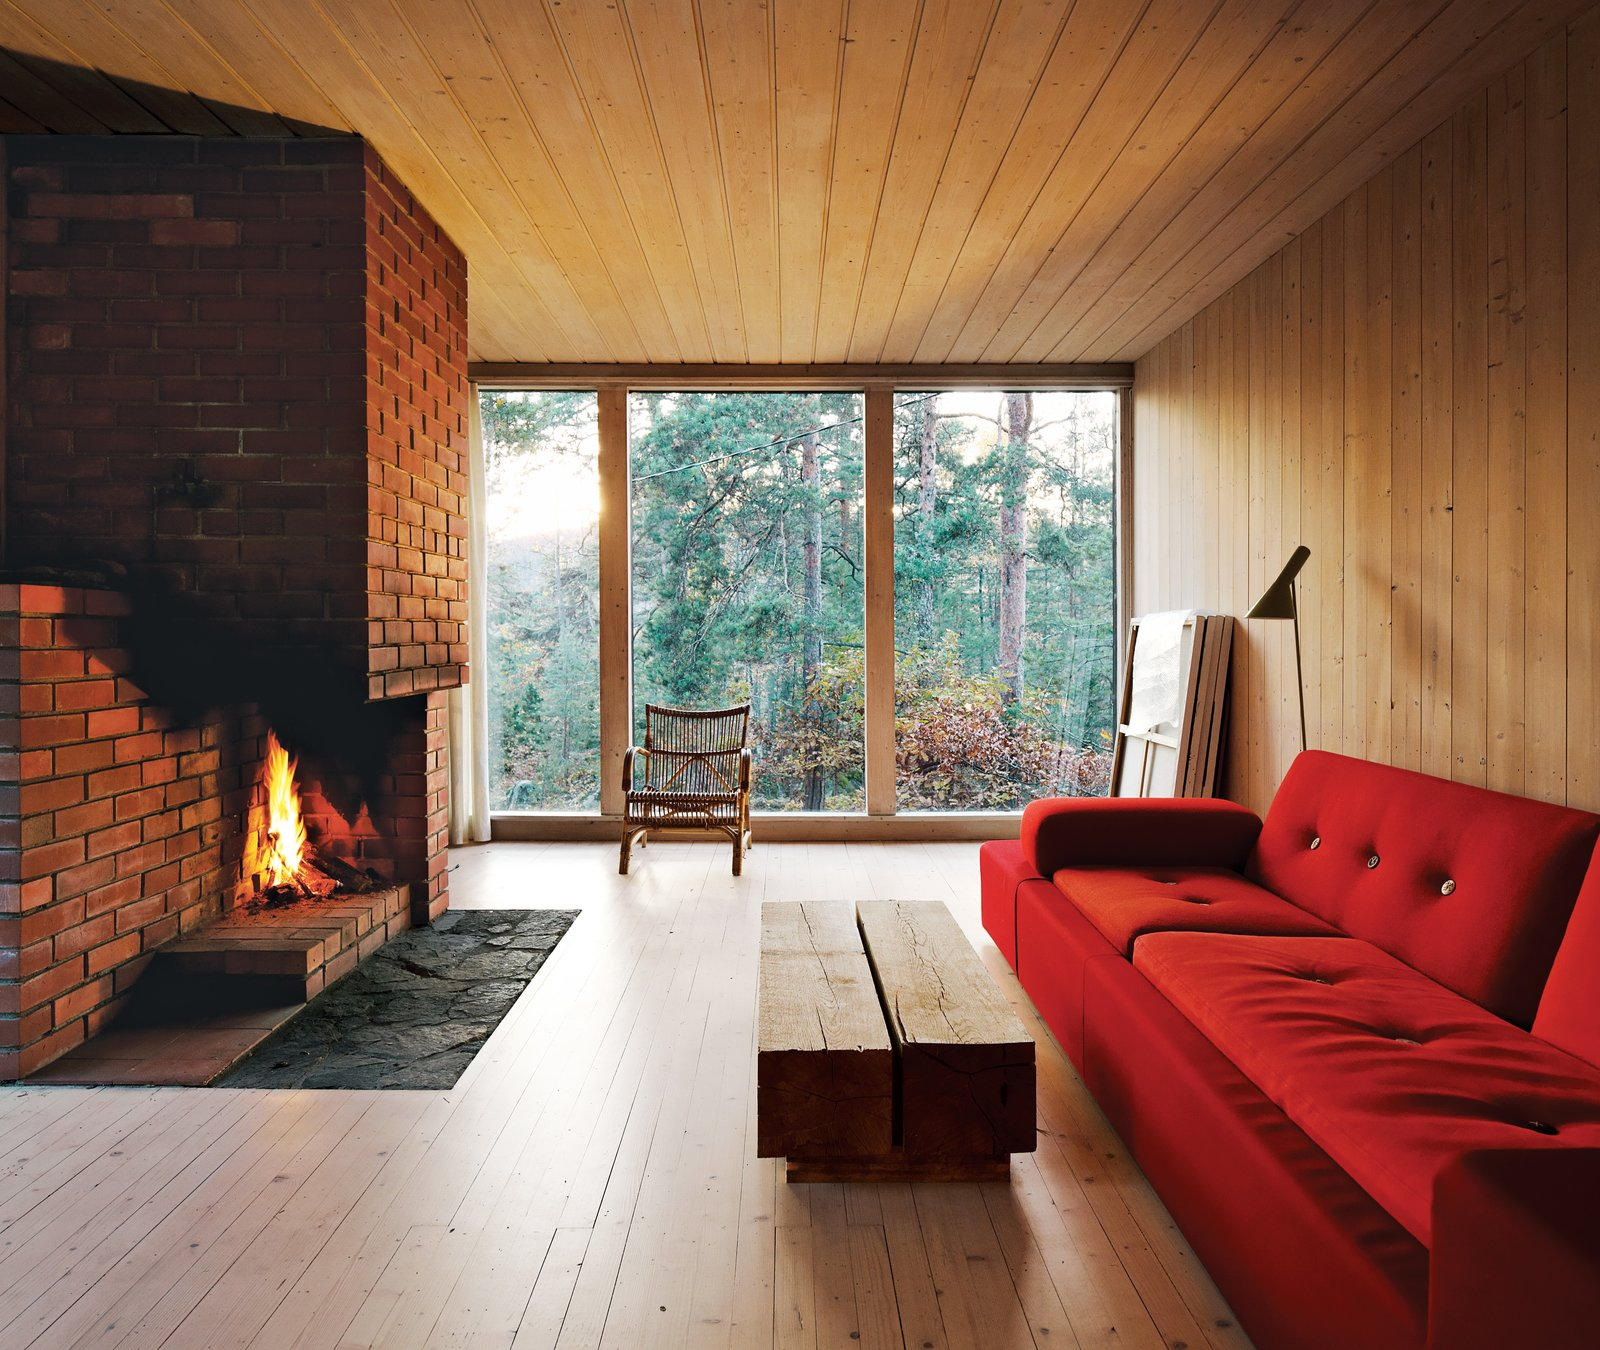 Living Room, Sofa, and Standard Layout Fireplace The interiors are clad in white-glazed pine, a contrast to the black-stained facade. The brick fireplace is original. Near a Polder sofa by Hella Jongerius for Vitra is a coffee table of Sævik's design. The rocking chair is vintage and came with the house.  430 Cabin by Diana Budds from Cozy Scandinavian Abodes